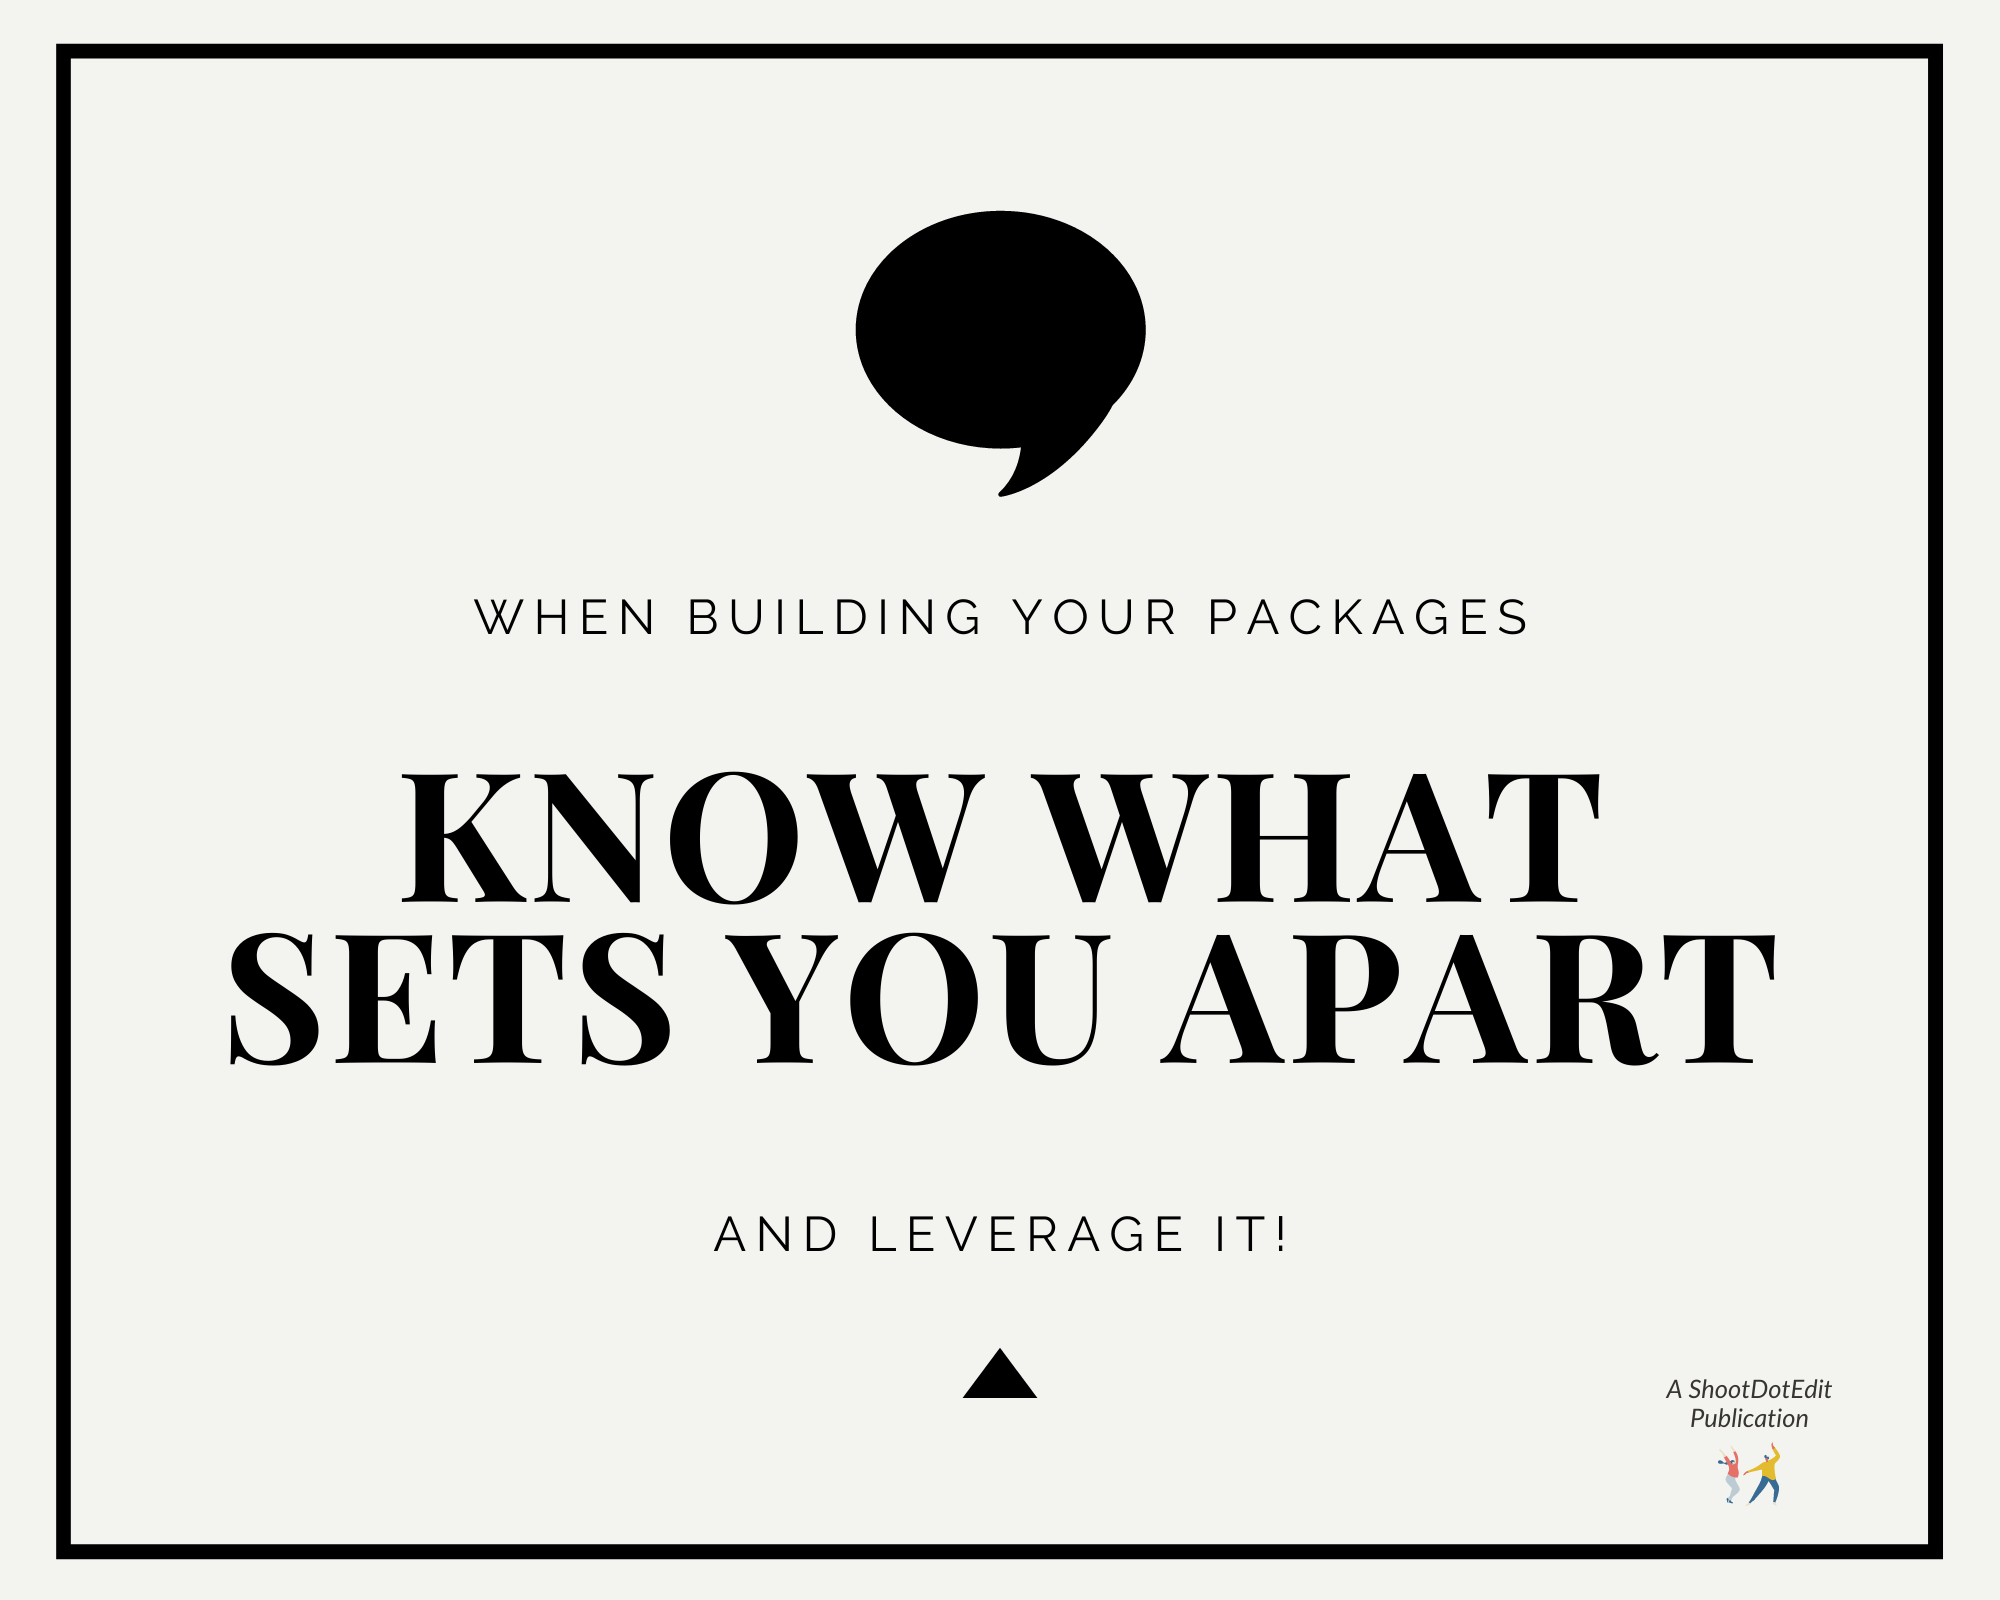 Infographic - When building your packages know what sets you apart and leverage it